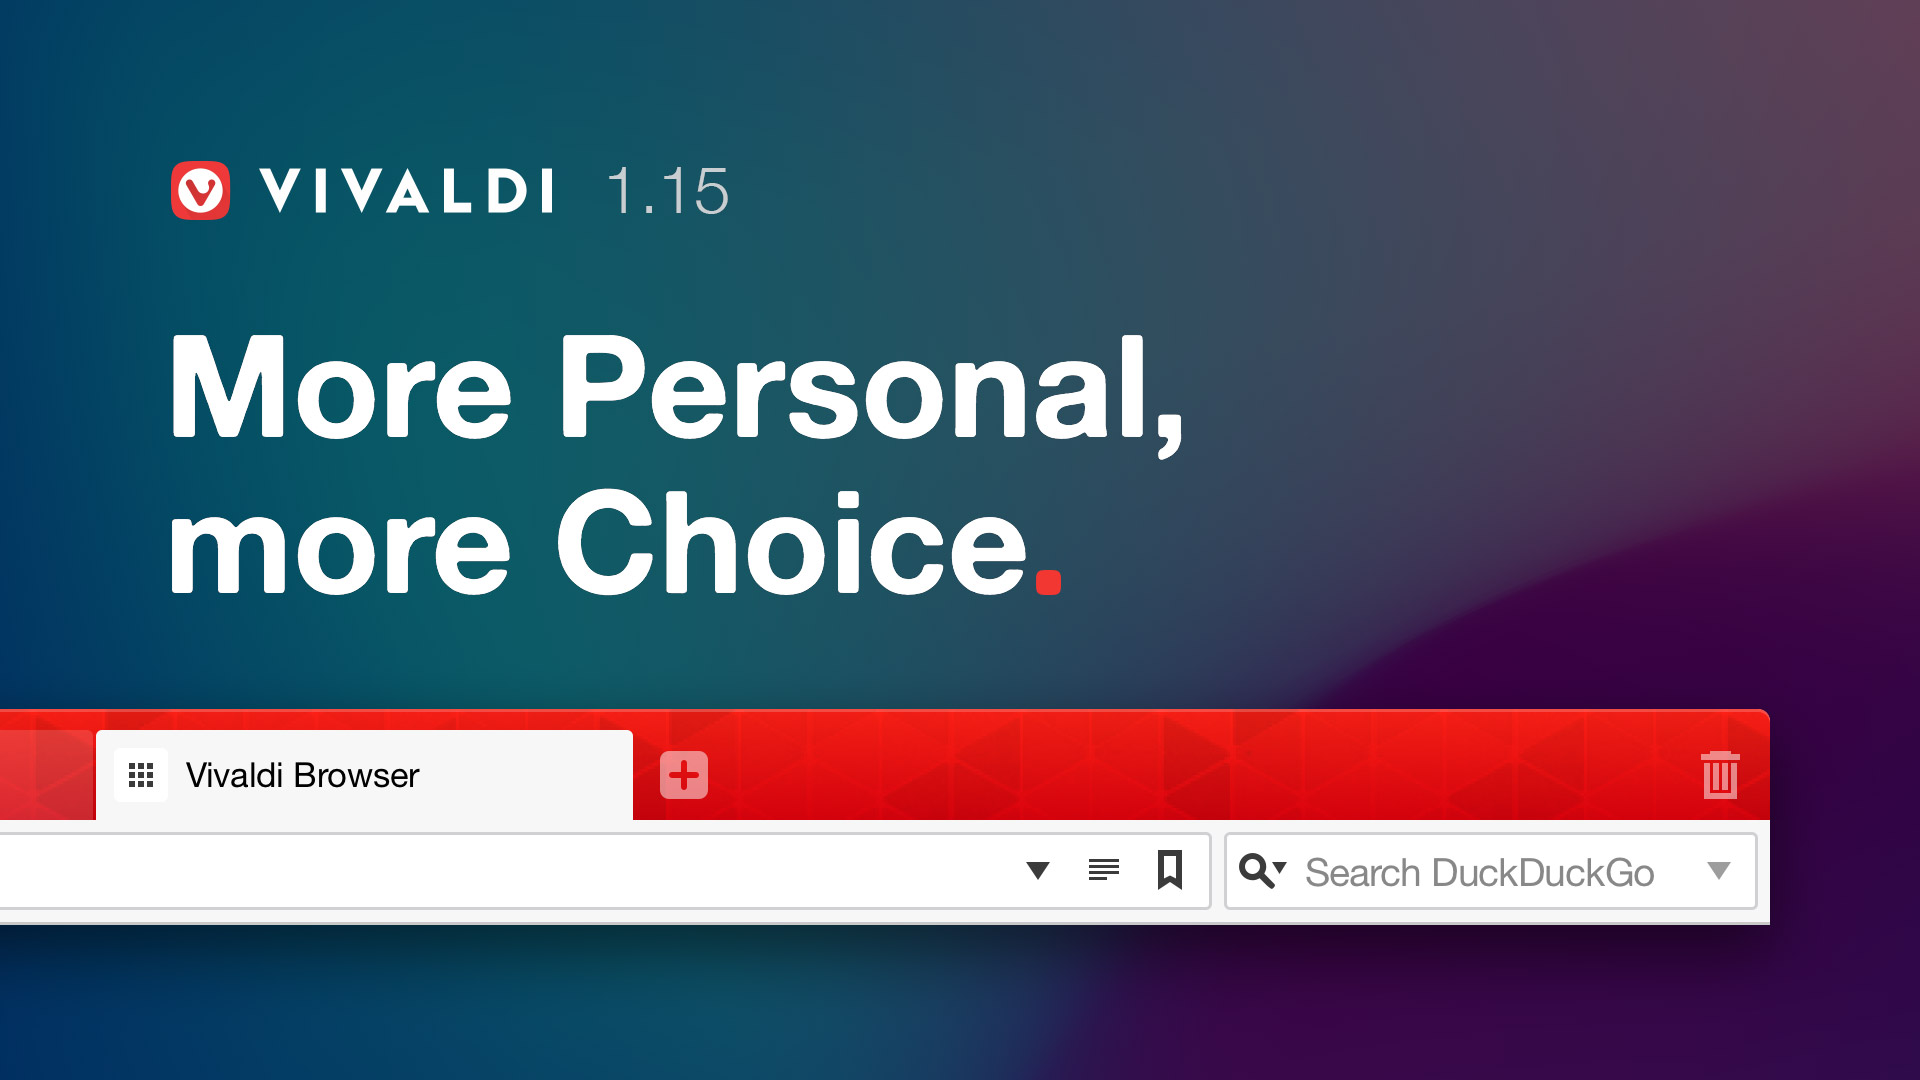 Vivaldi 1.15 Update And The Browser is Just Better